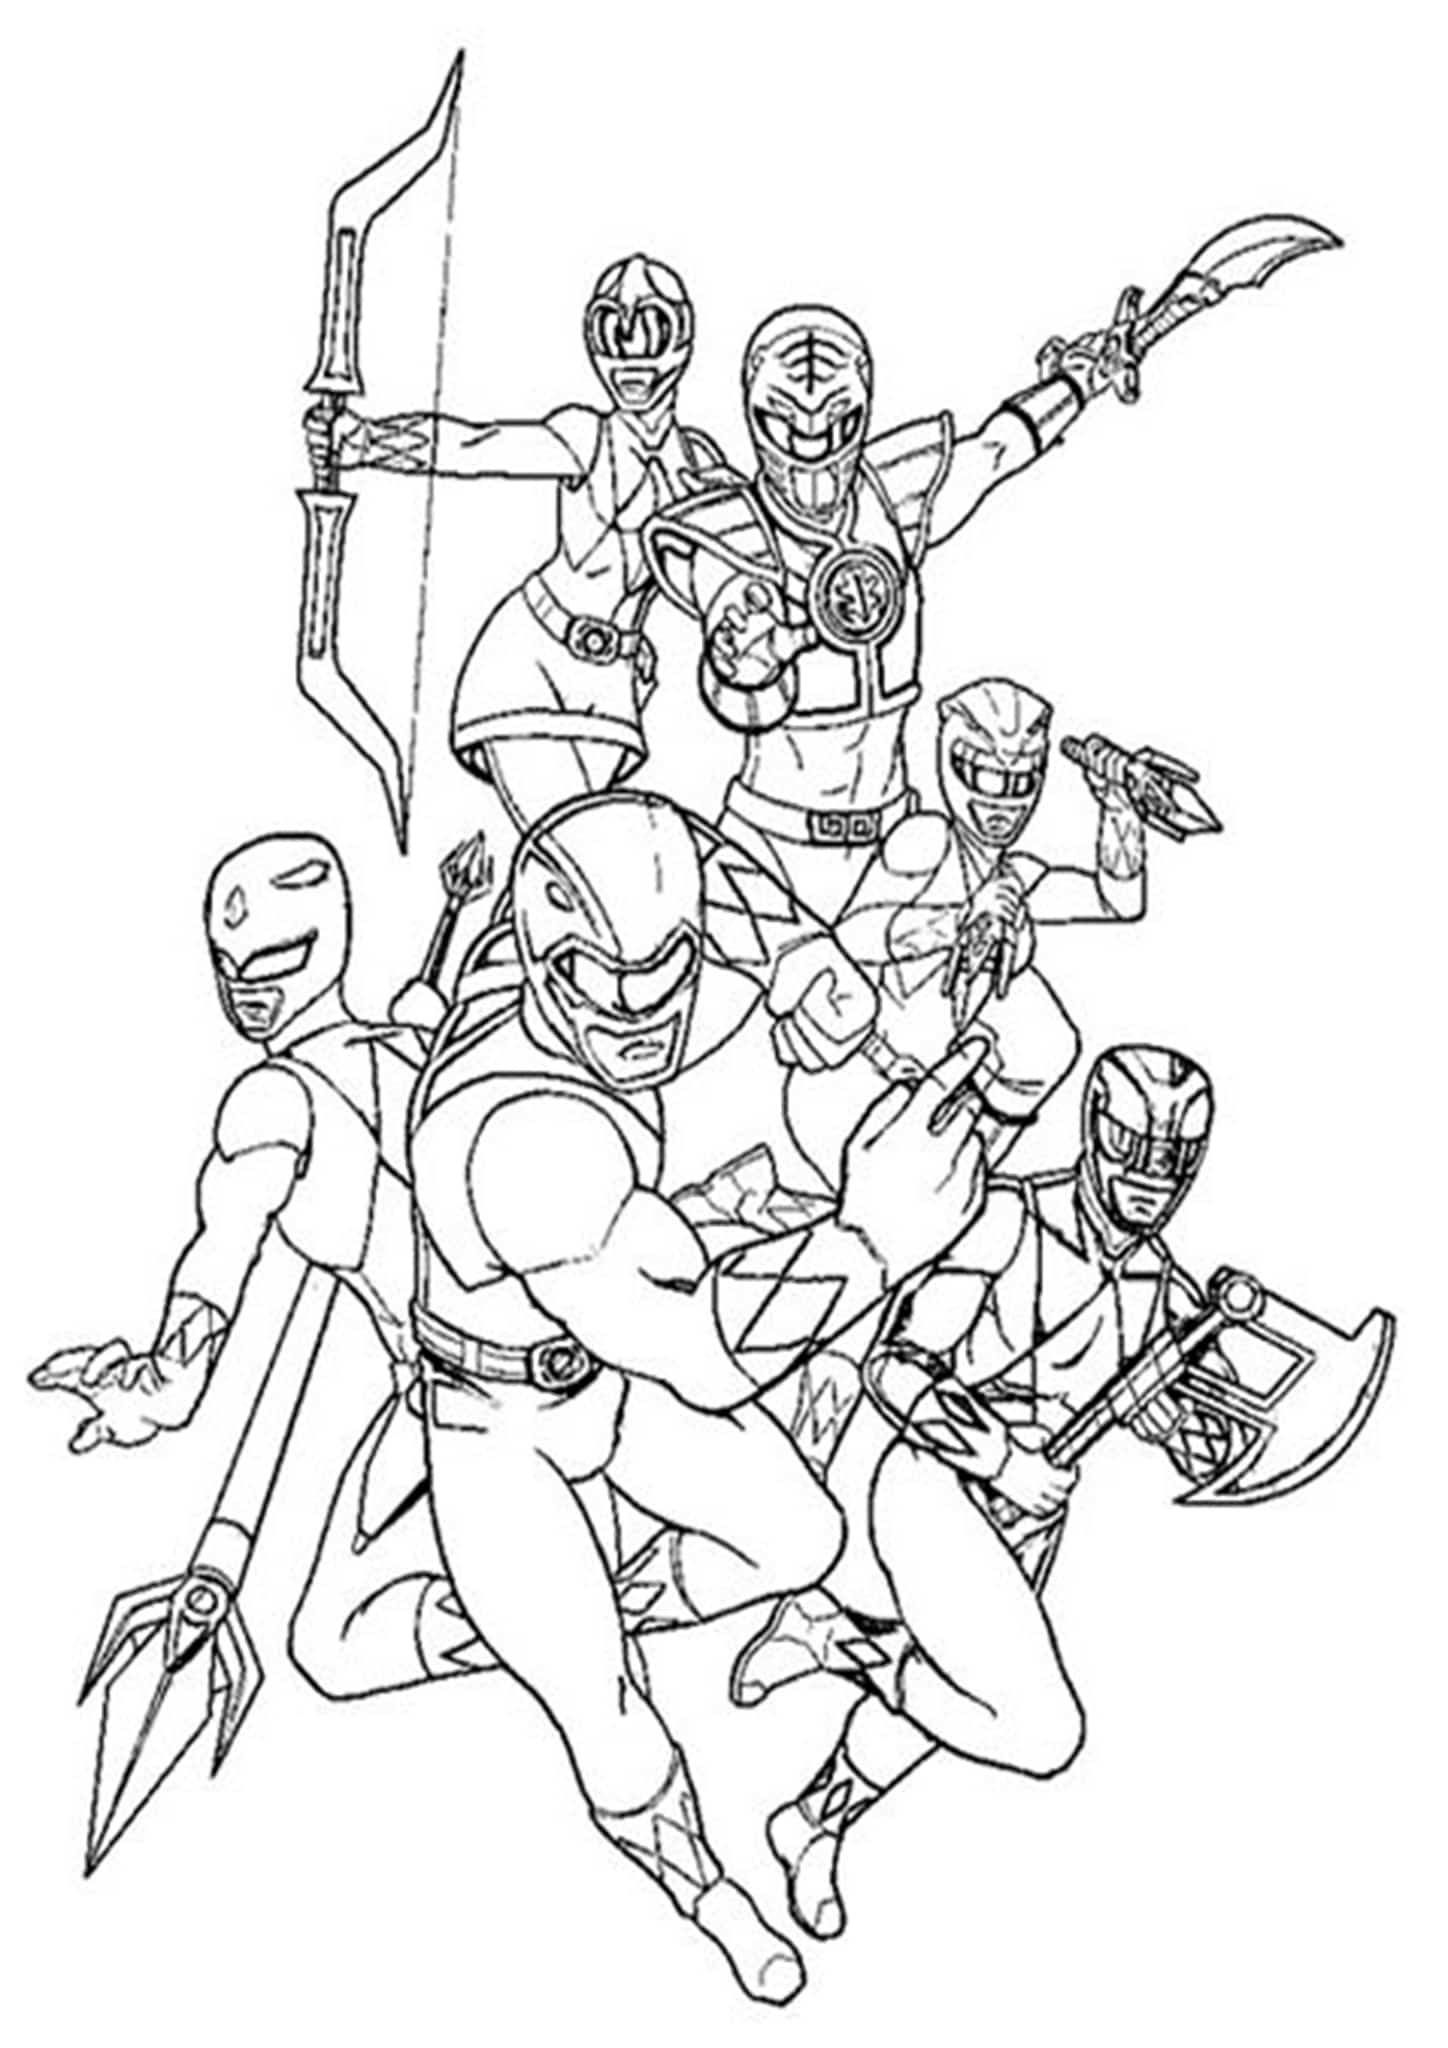 power ranger coloring pages free cool power rangers white ranger coloring page power free ranger power pages coloring